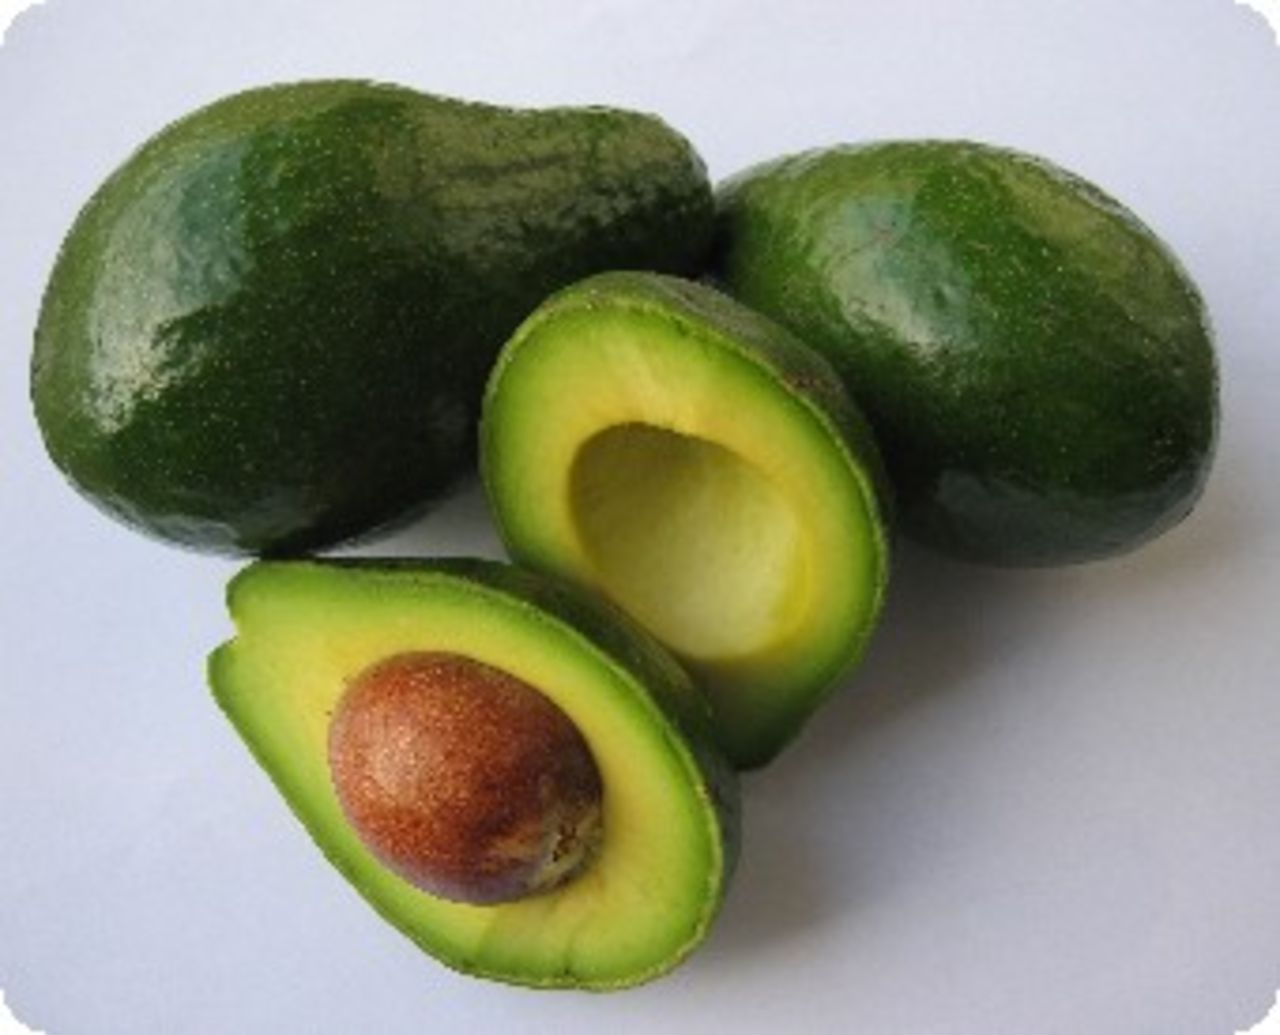 Teacher in Mexico: What's with the price of avocado?